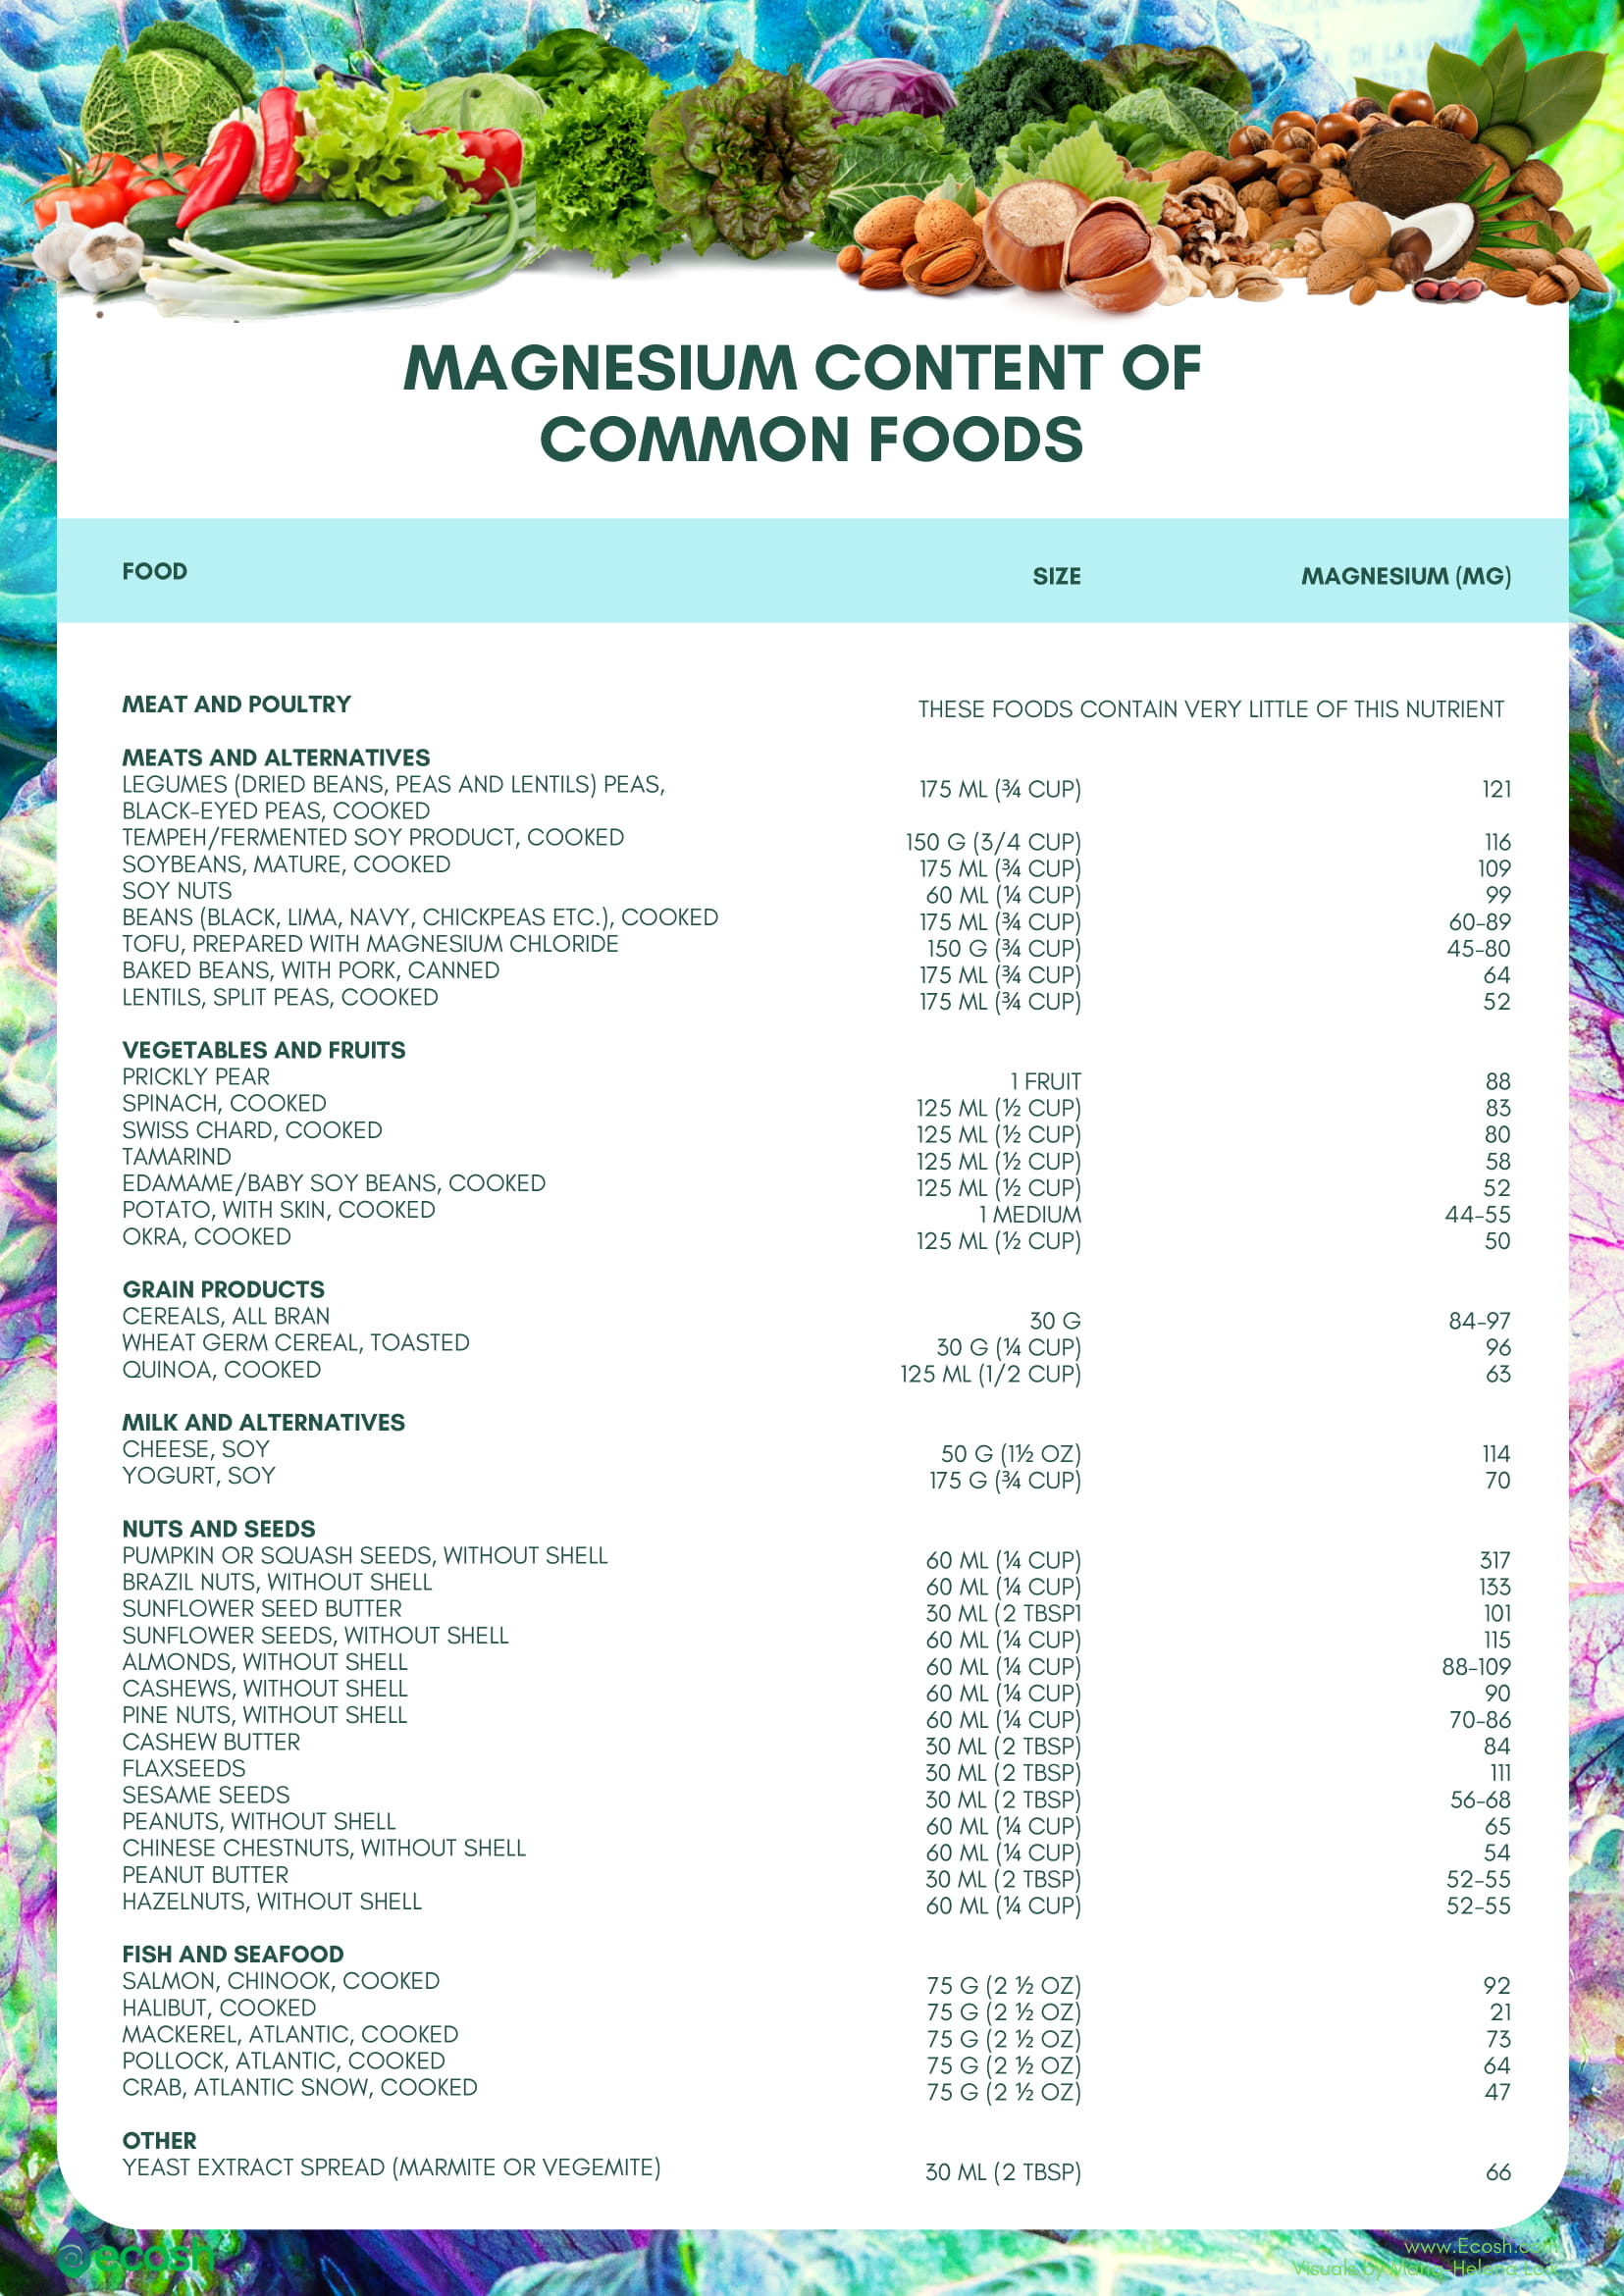 Magnesium content of common foods